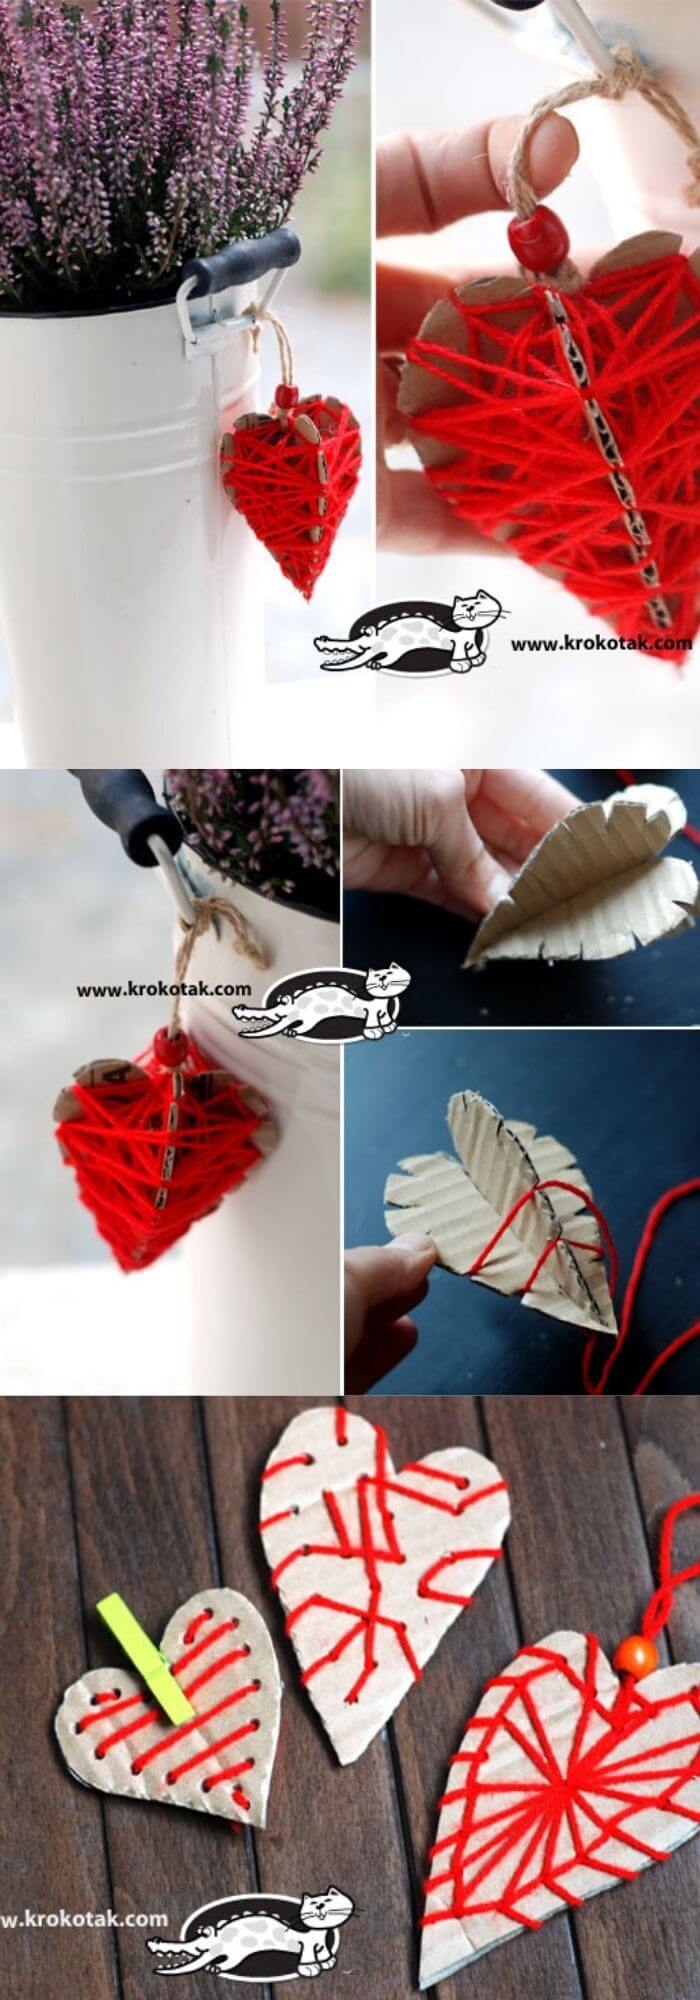 Heart from cardboards | Heart-Shaped Crafts For Valentine's Day